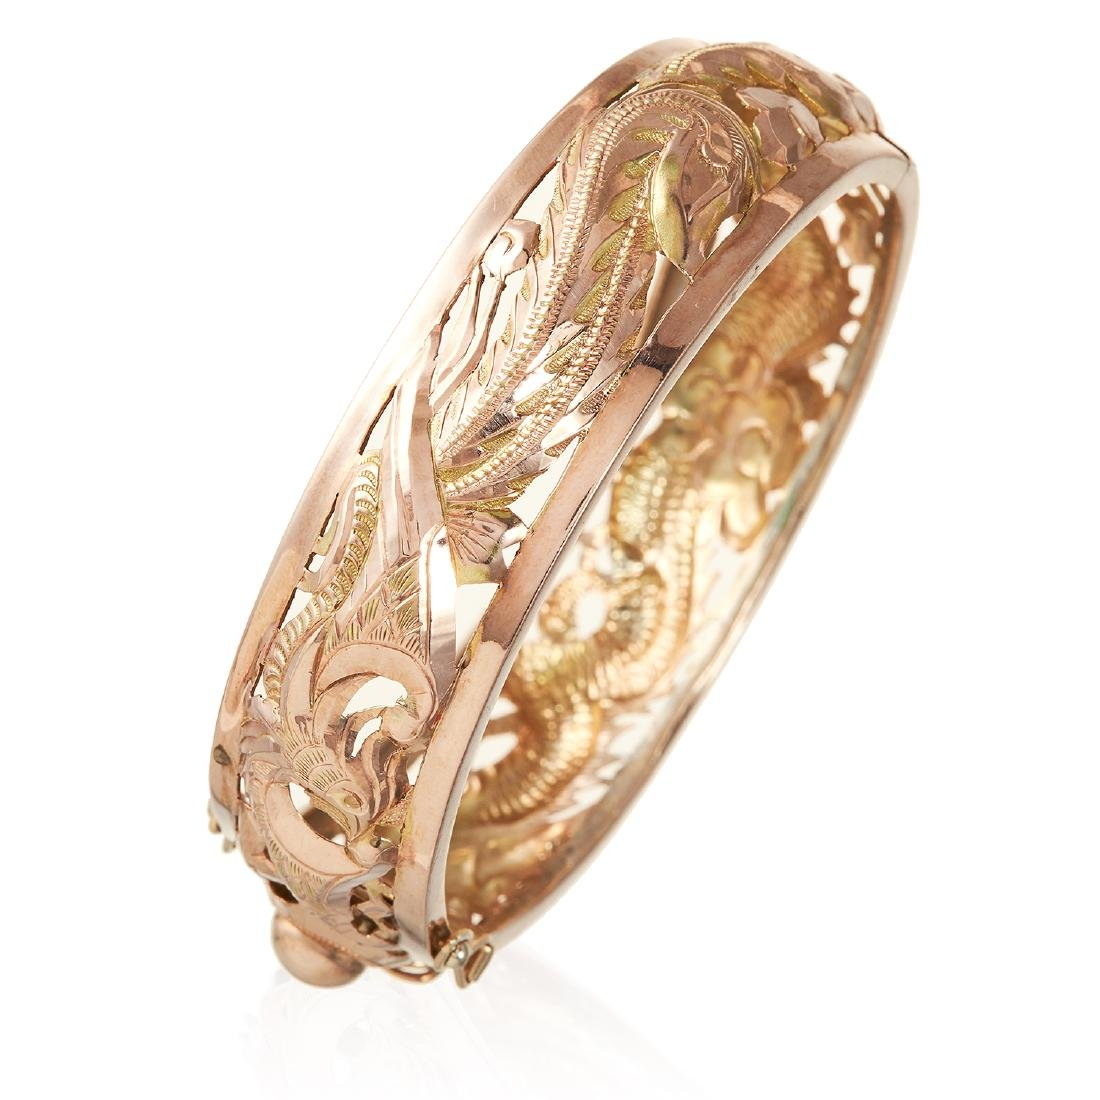 AN ANTIQUE CHINESE BANGLE / BRACELET in high carat